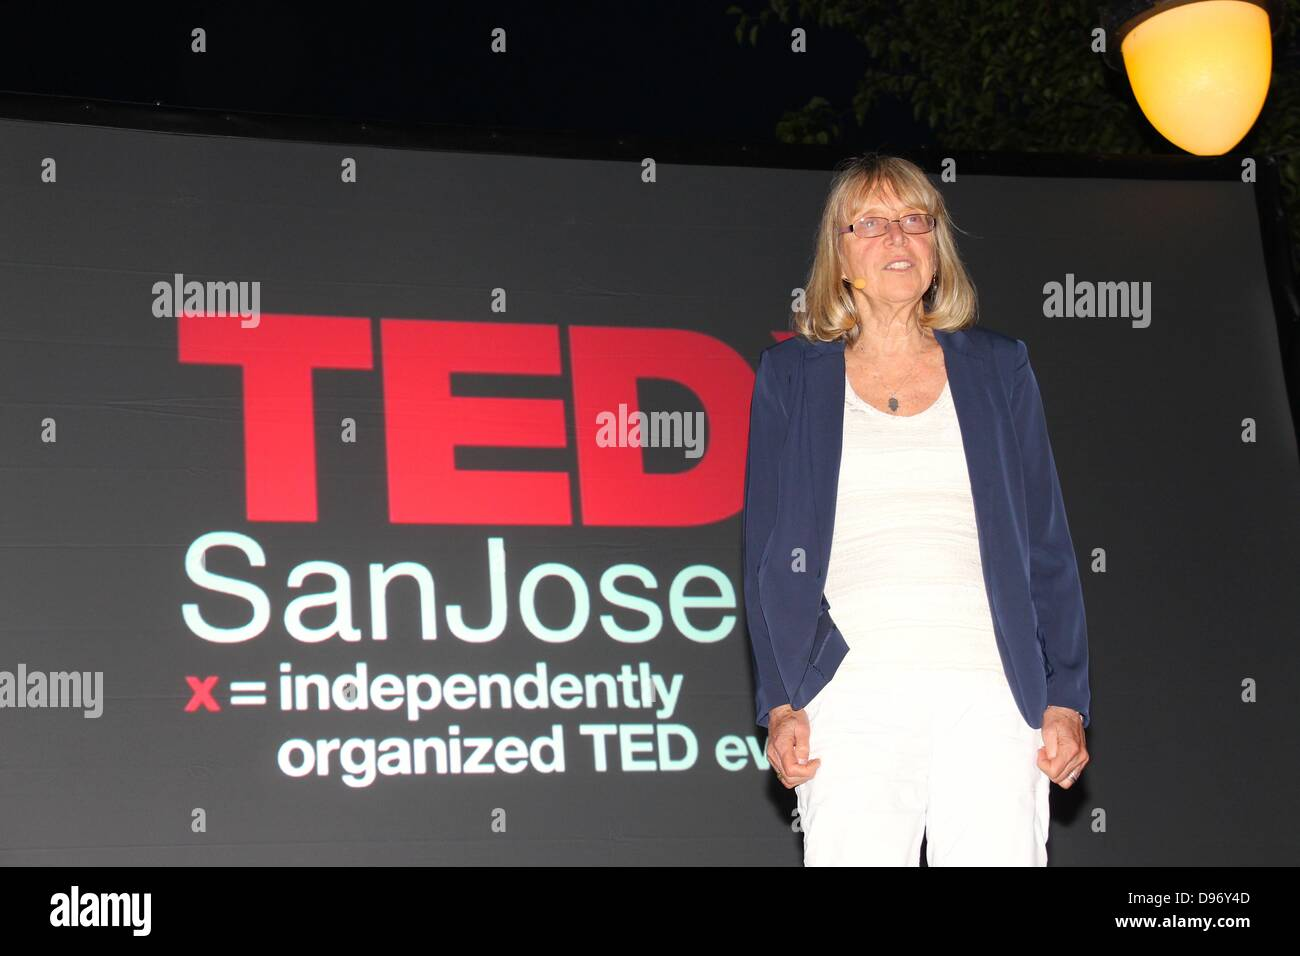 USA - San Jose, California 12th June 2013, The TEDx lecture series held in San Jose, California. Esther Wojcicki, - Stock Image